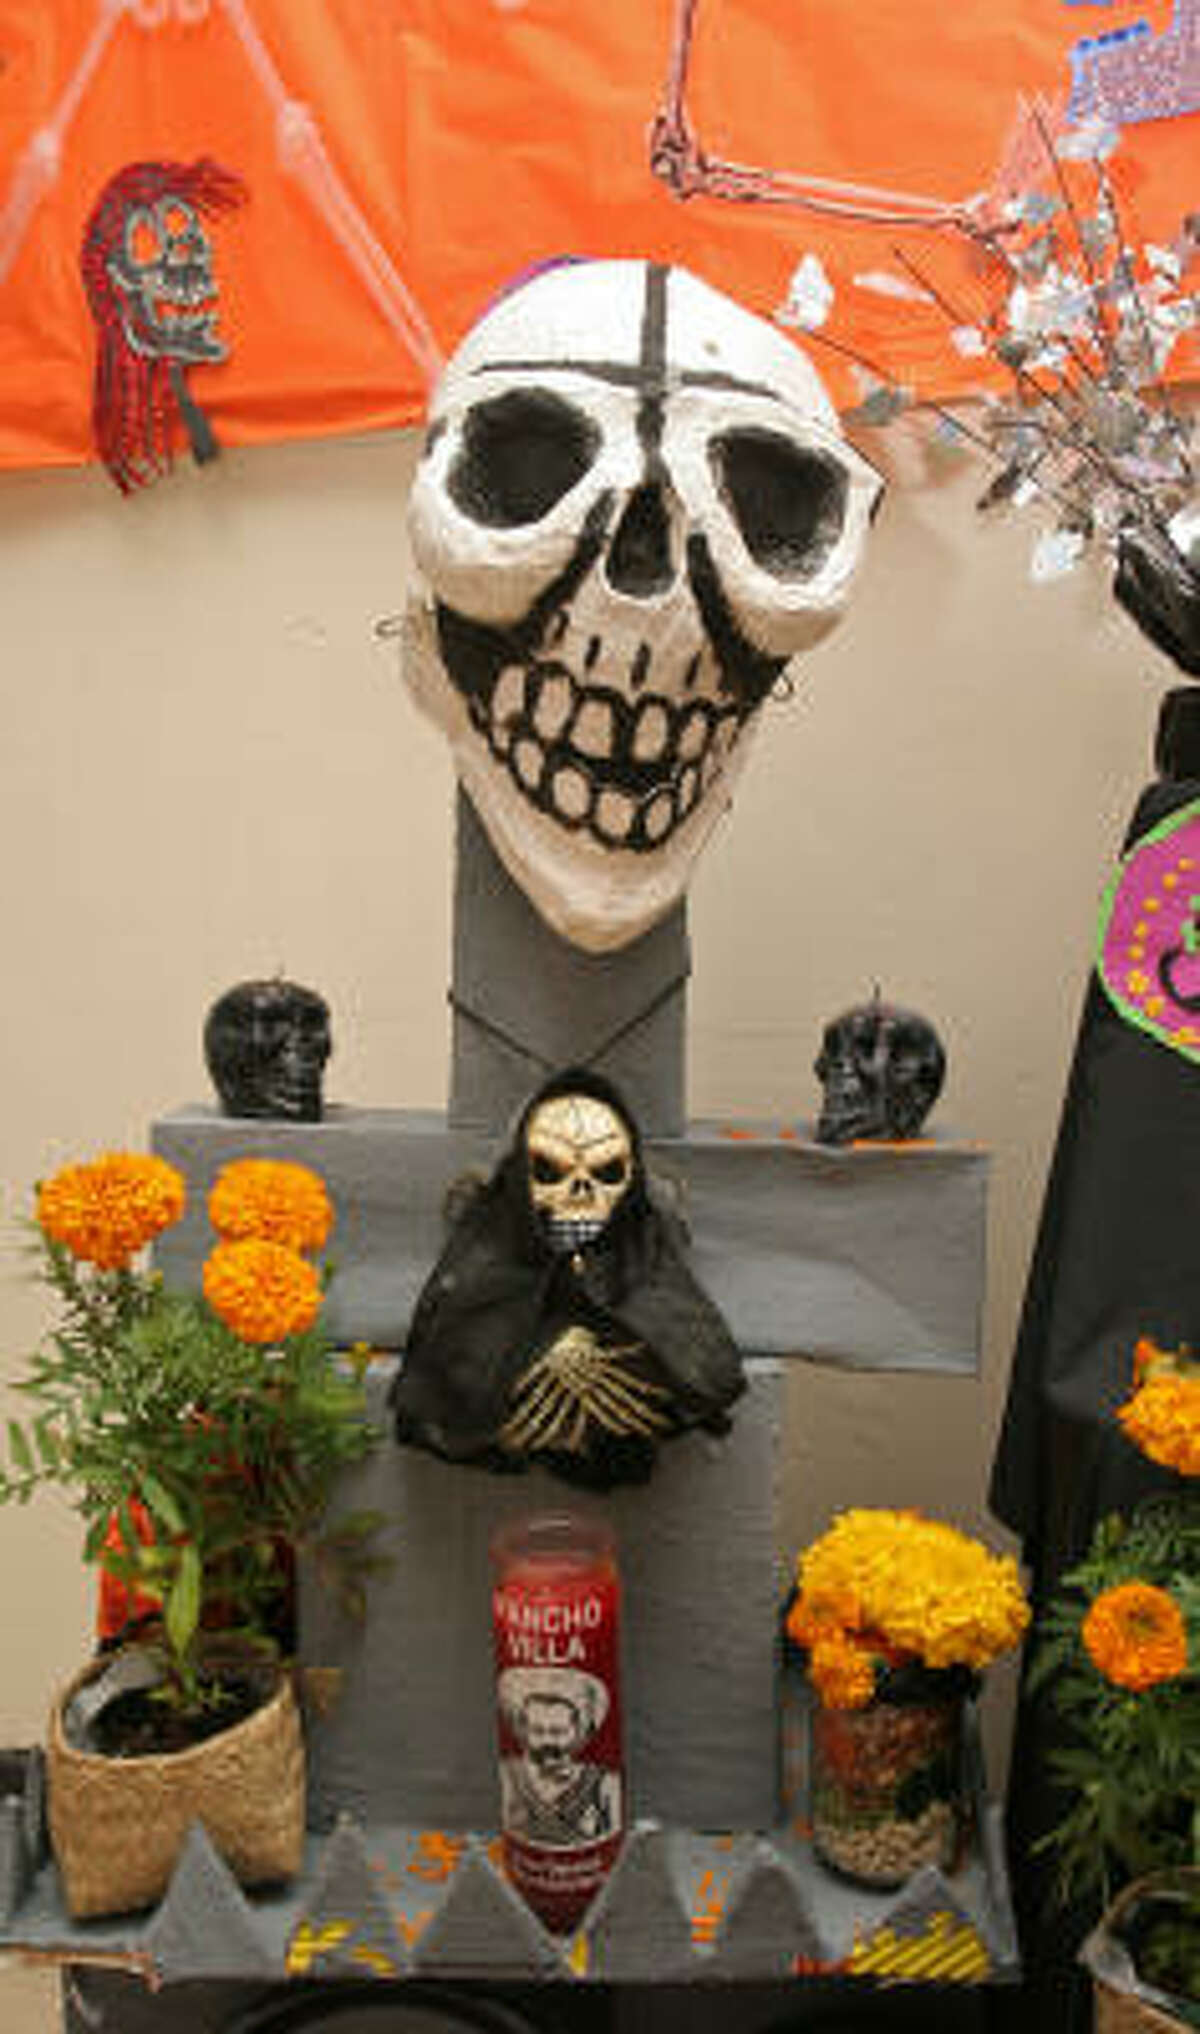 See Day of the Dead art at the MECA Dia de los Muertos: Honoring our Past, Celebrating Our Future event this weekend. The festival runs Oct. 31- Nov. 1. For more information visit http://www.meca-houston.org/dotd/index.html.